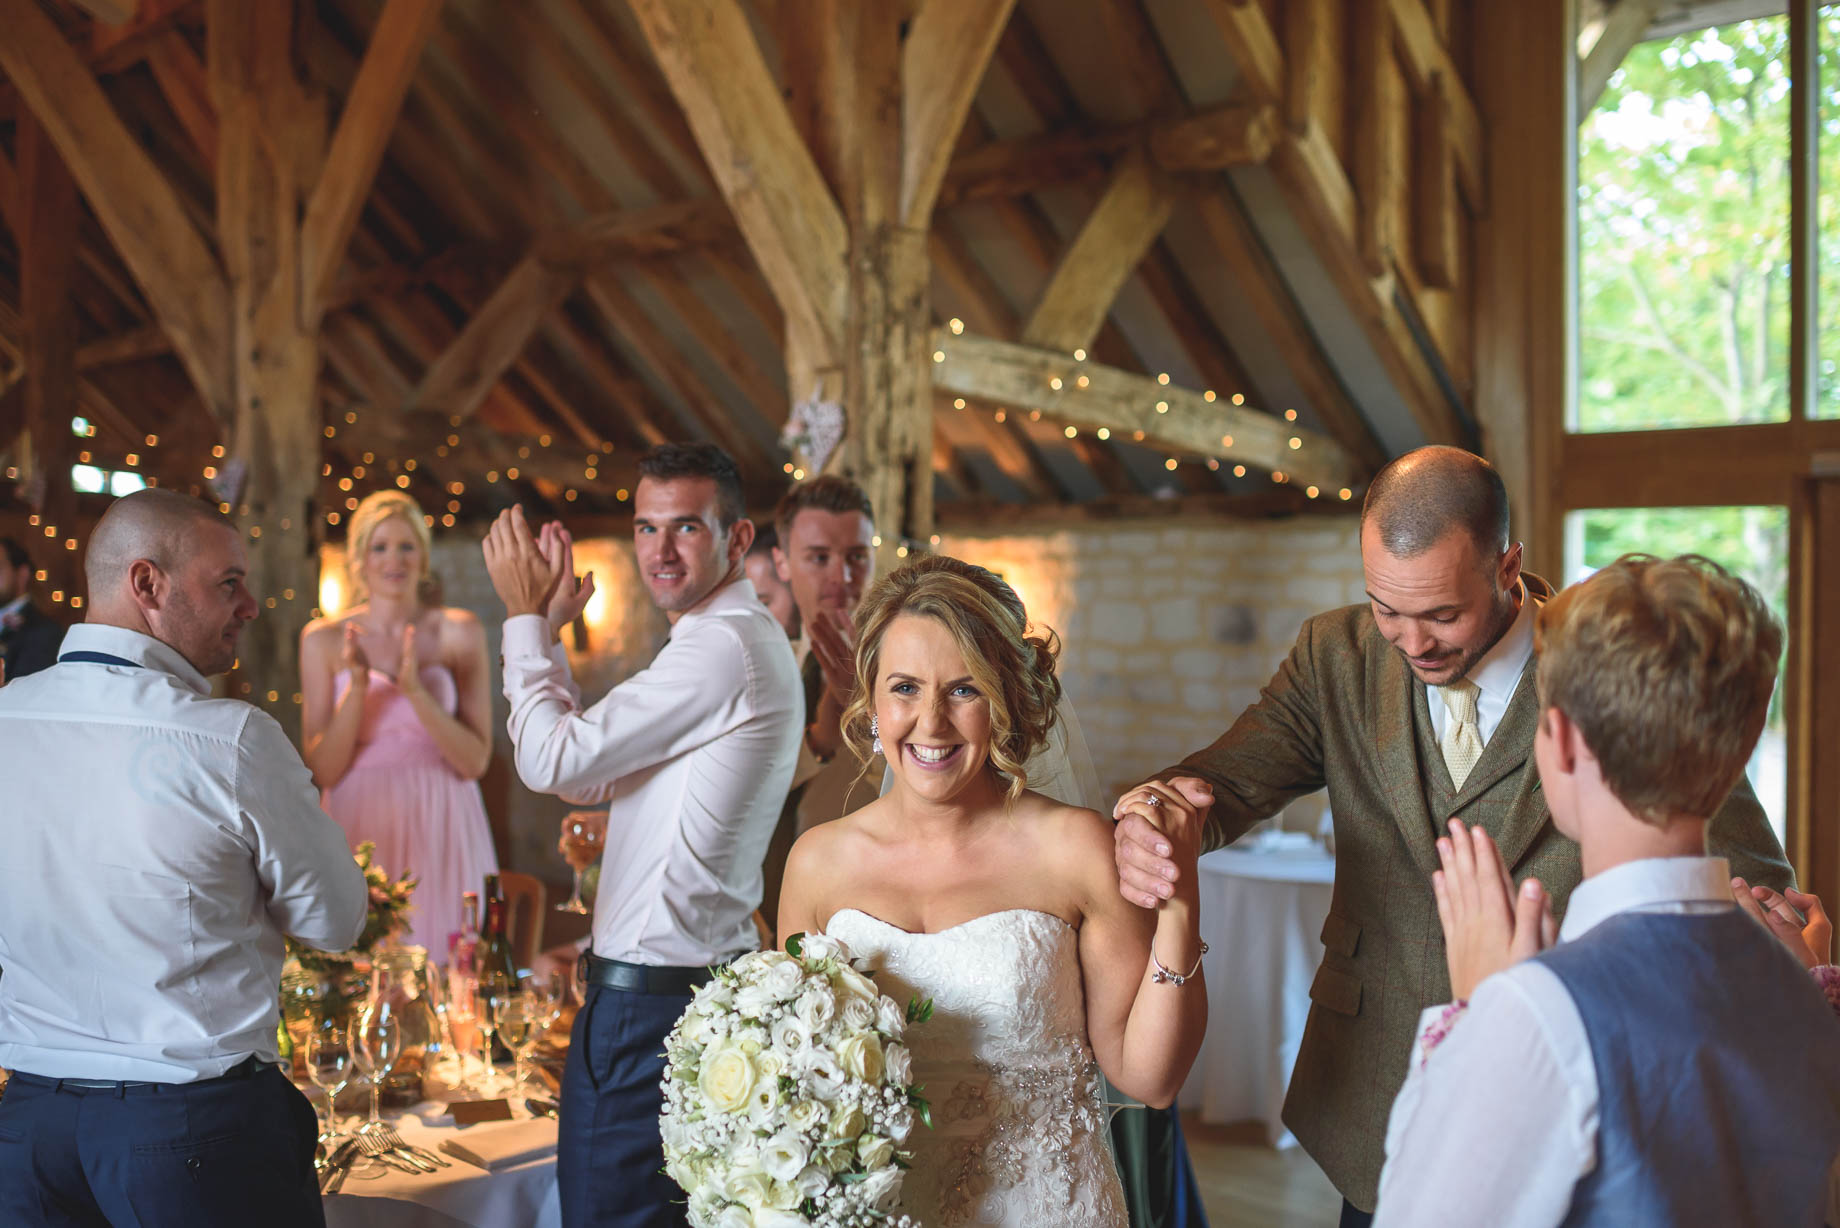 Bury Court Barn wedding photography - Guy Collier - Kate and Russ (125 of 187)